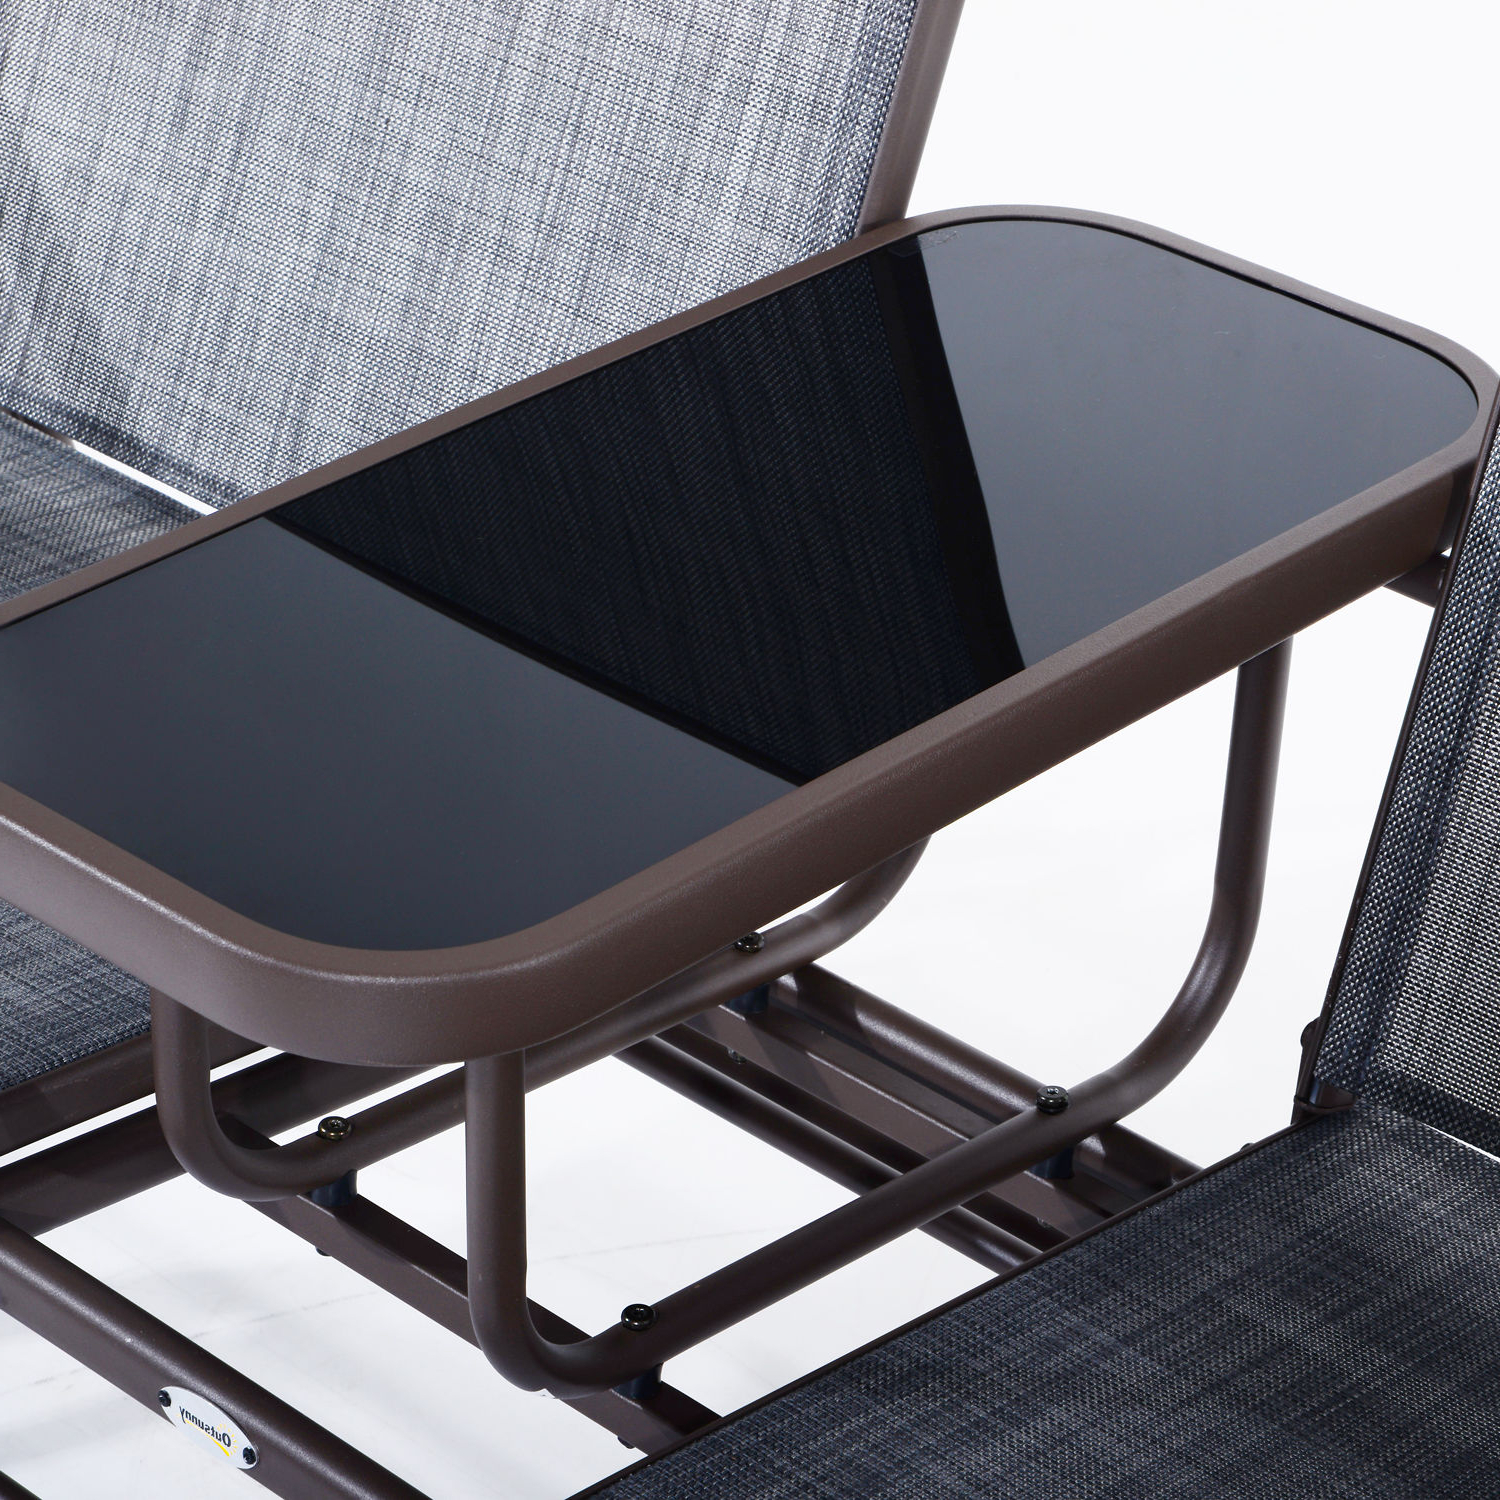 Outsunny 2 Person Outdoor Mesh Fabric Patio Double Glider Intended For 2020 Center Table Double Glider Benches (Gallery 10 of 30)